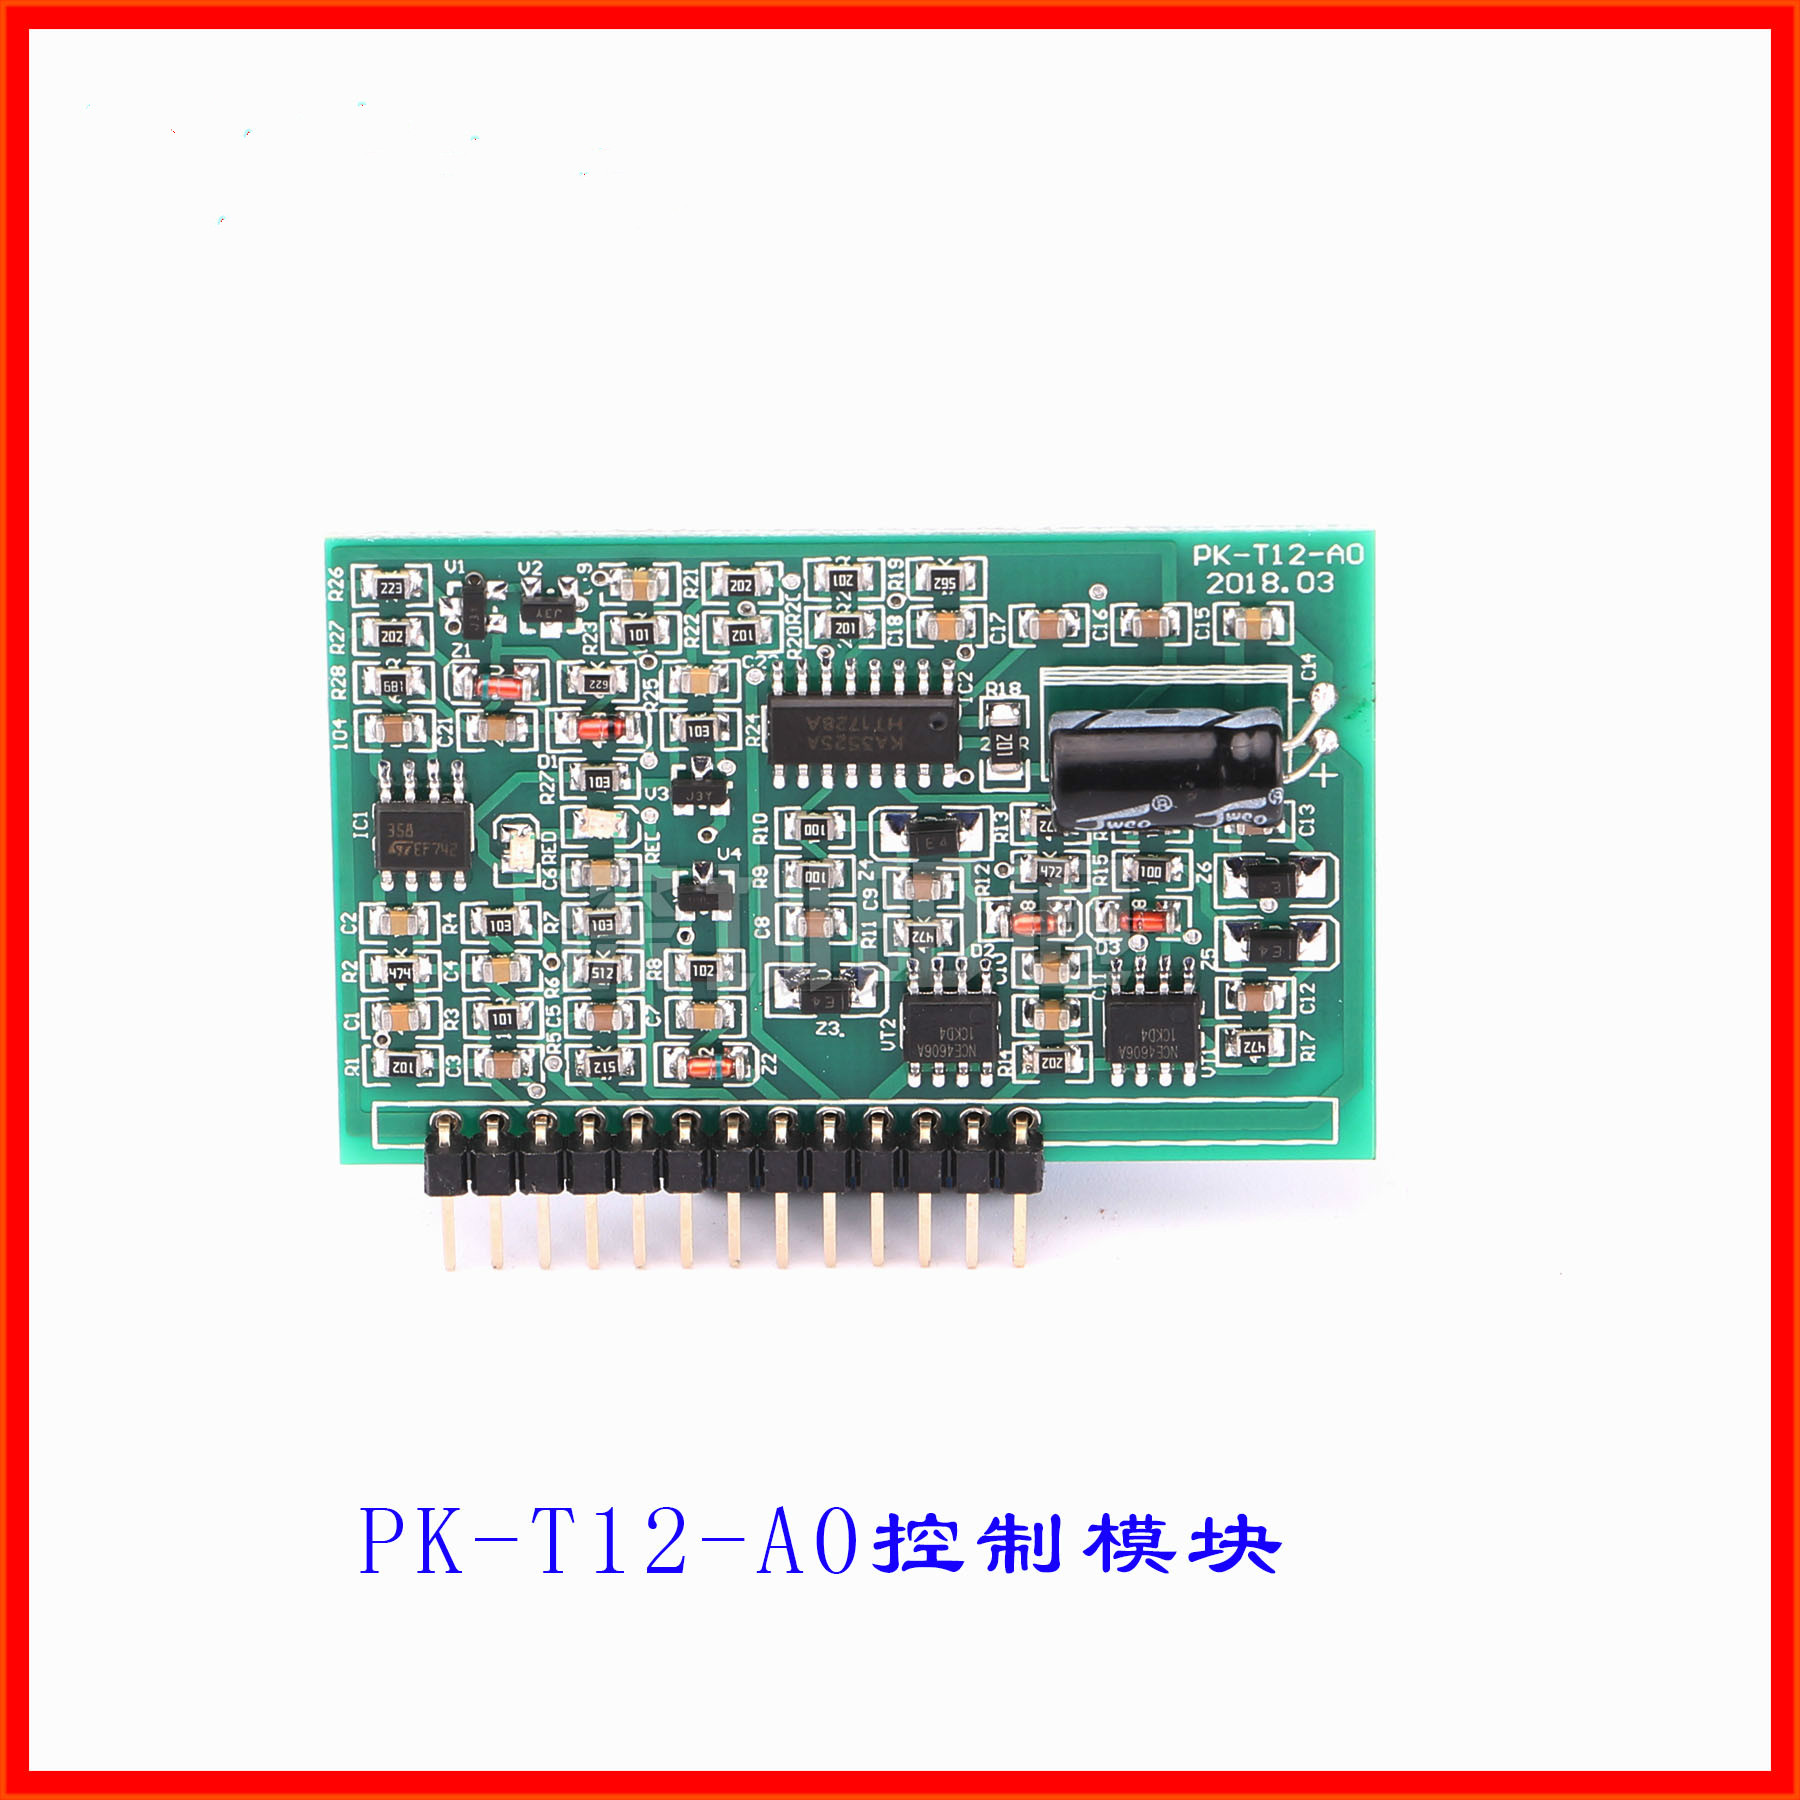 Inverter Welding Machine Parts PK-T12-A0 Control Module Small Vertical Board Double Voltage Welding Machine 3525 Control Board